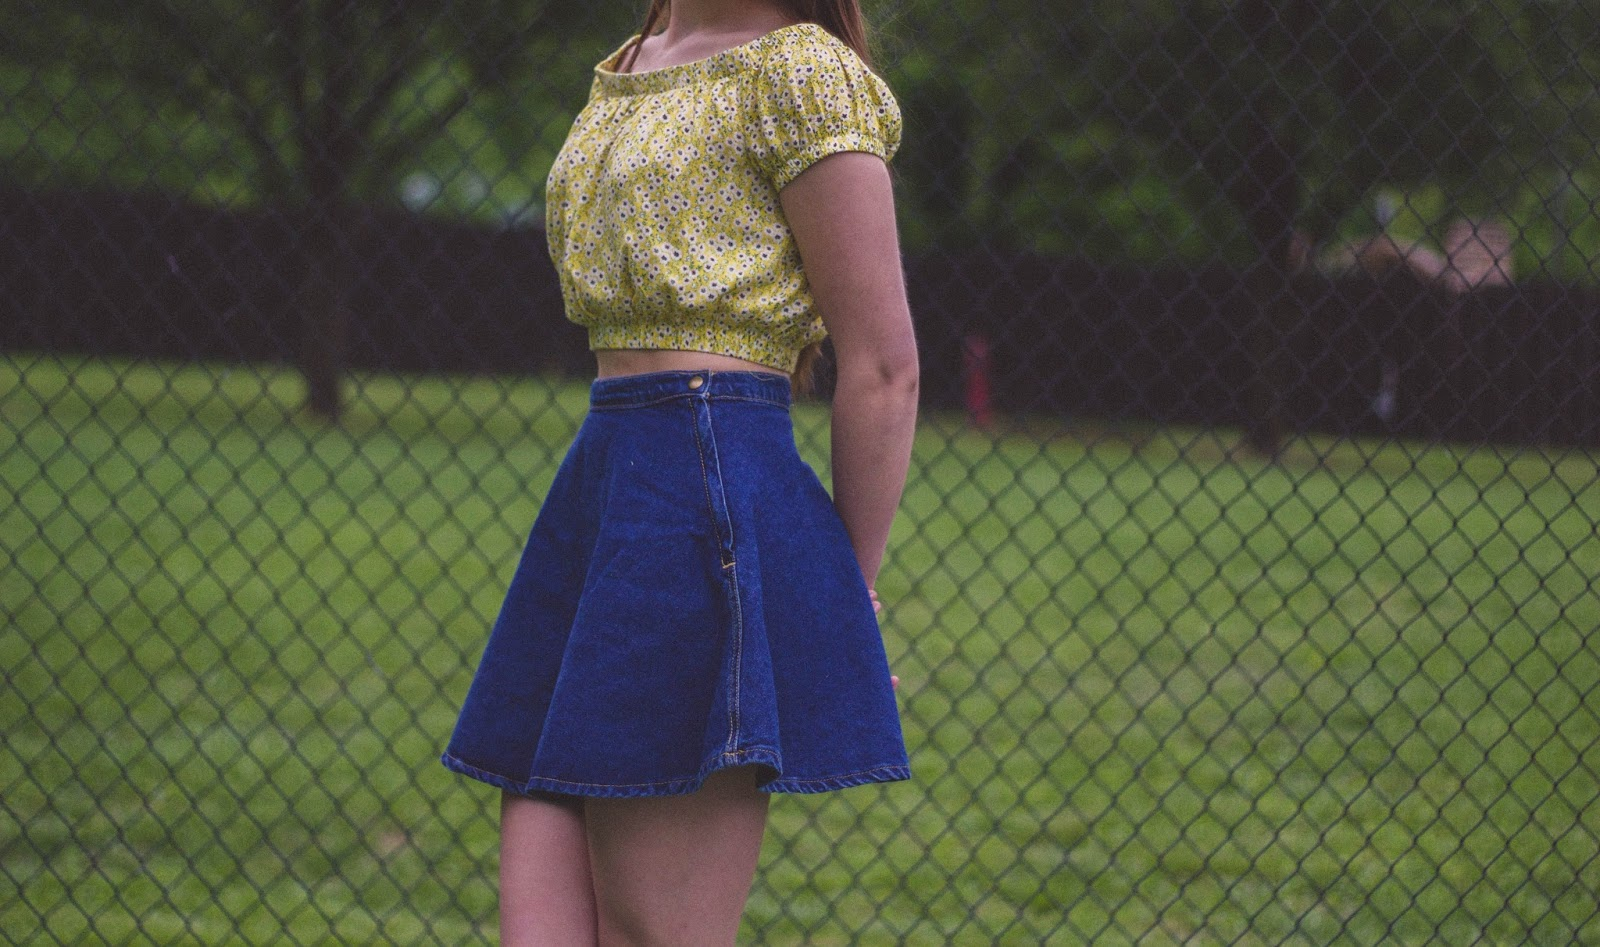 retro style, lolita, denim circle skirt, bardot top, music festival outfit, lana del rey, outfit, fashion blogger, movie, film, costume design, vintage, style